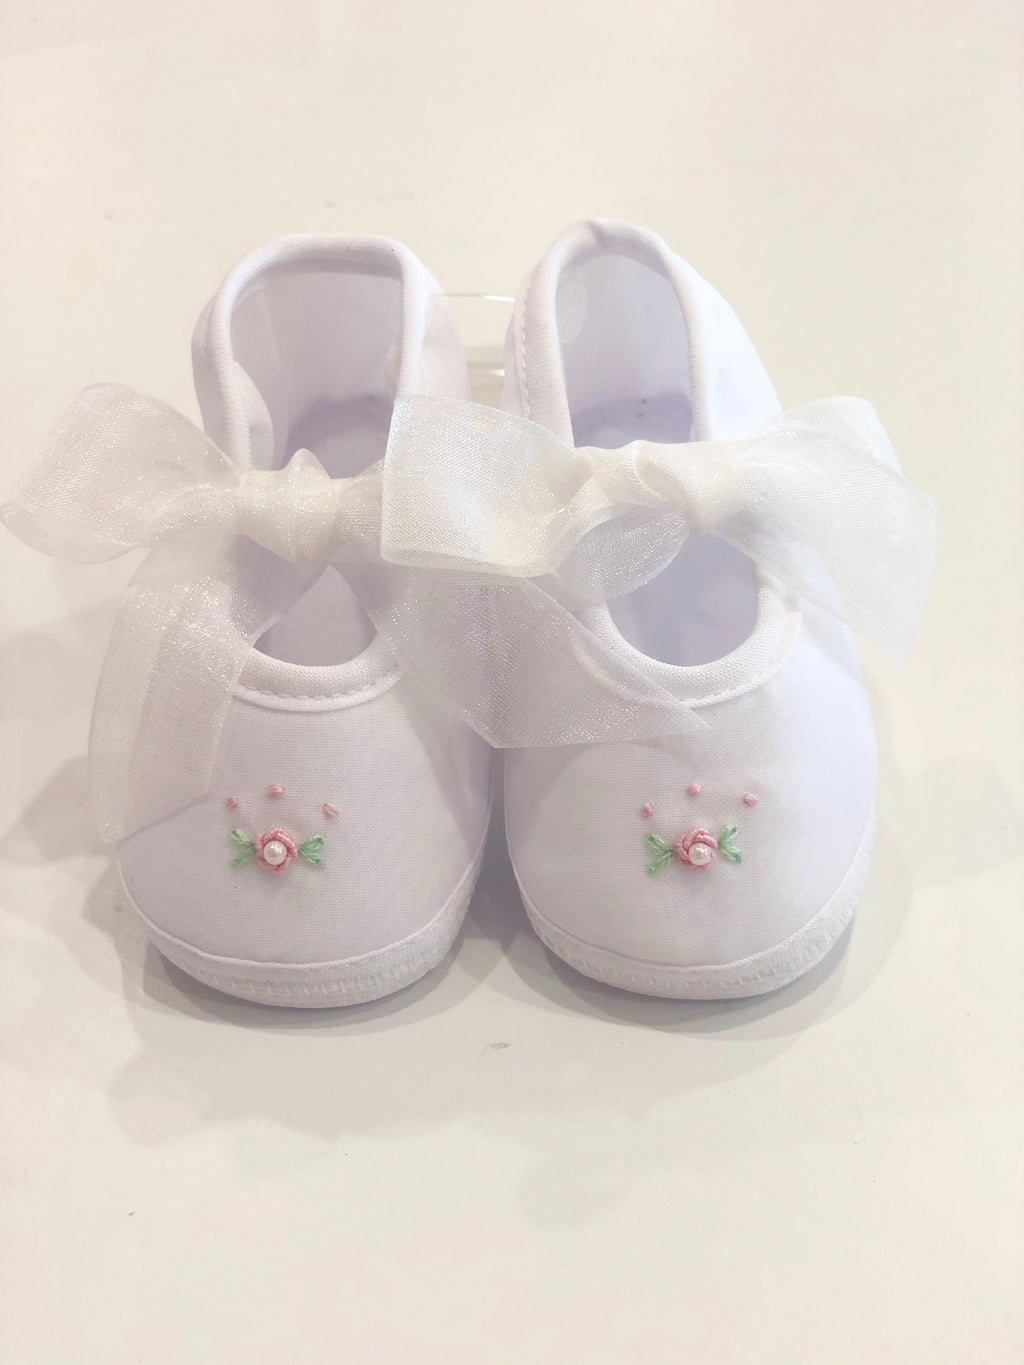 Rosebud Shoes